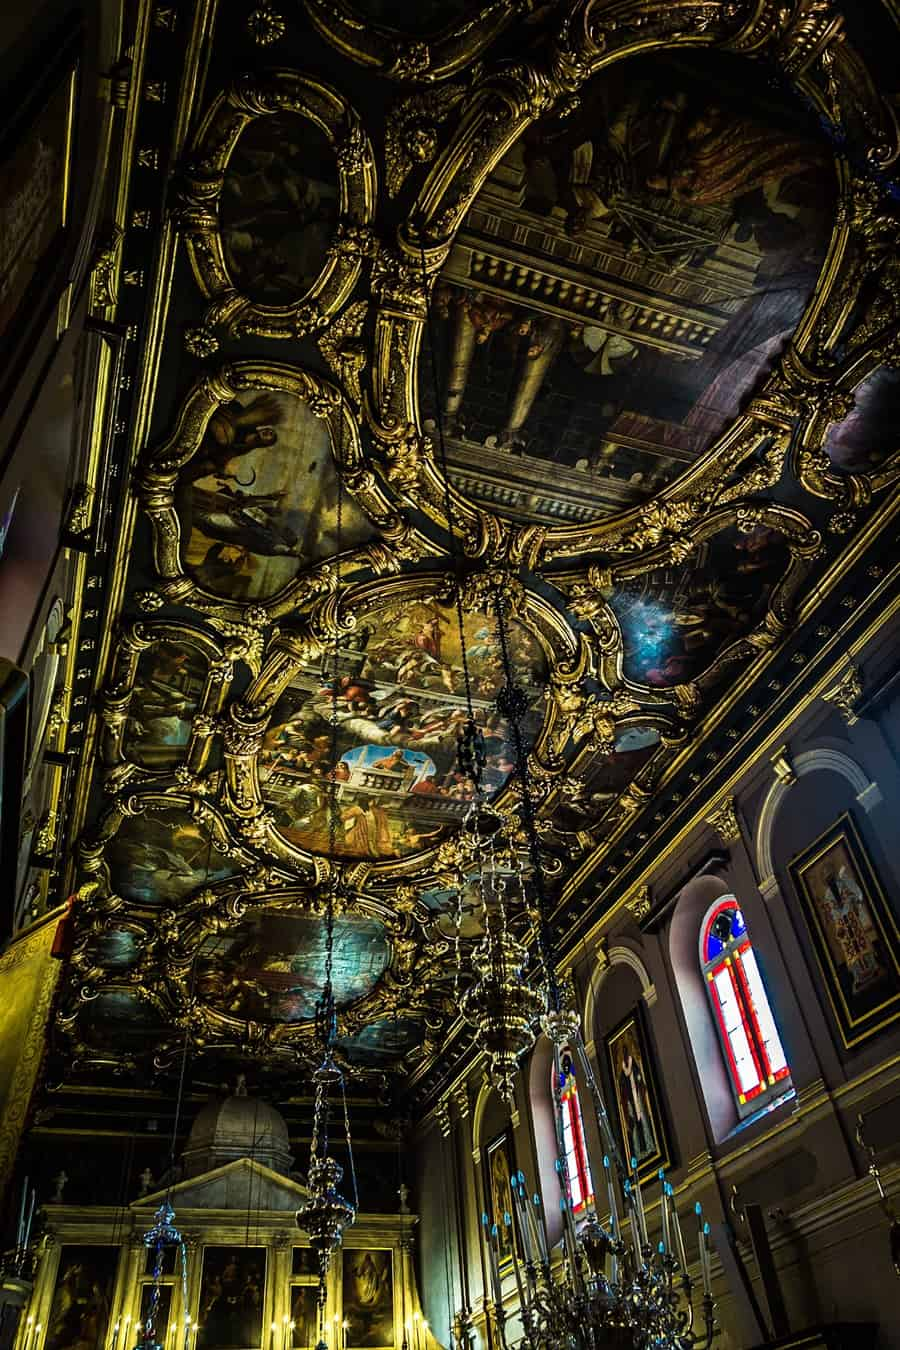 Church Ceiling, Corfu, Greece, by Rick McEvoy interior photographer